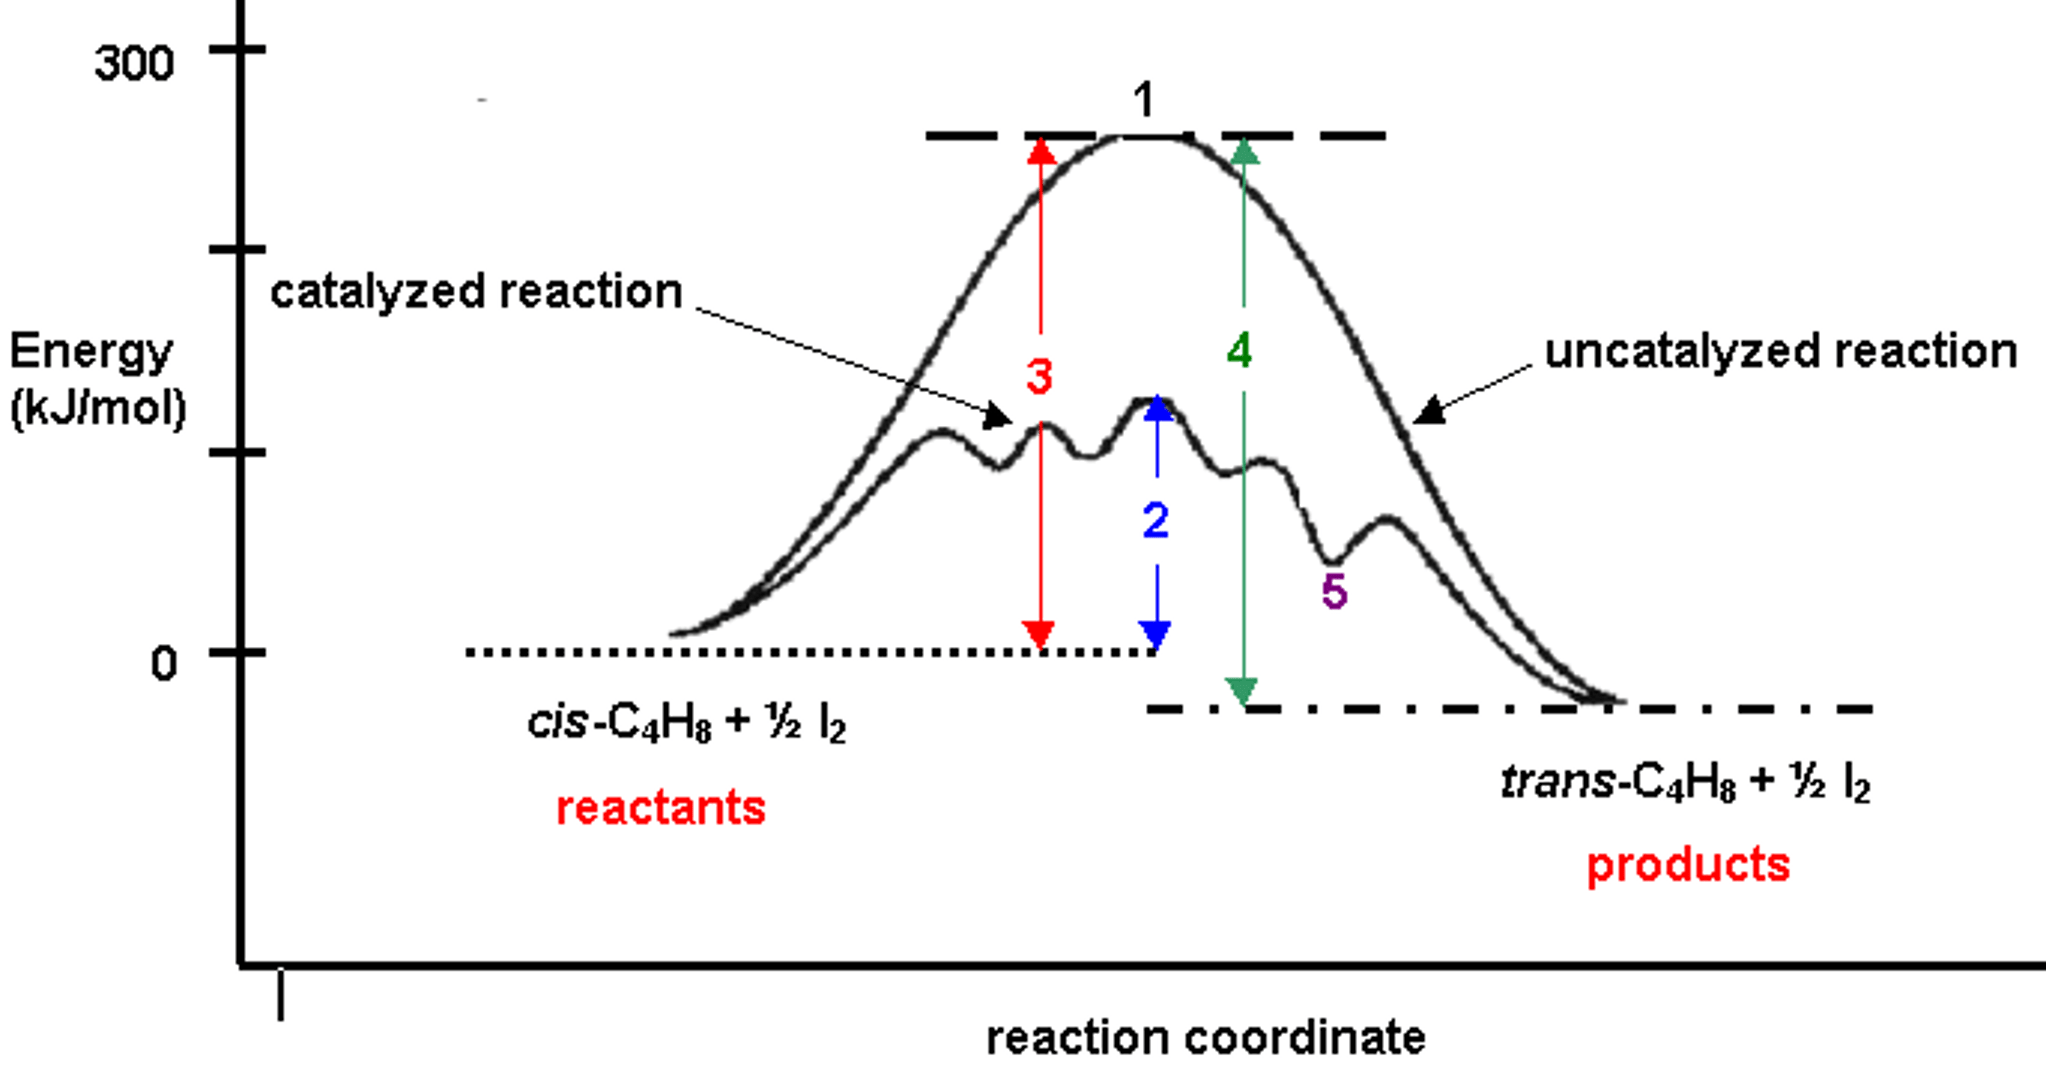 Solved The Diagram Shown Above Shows The Reaction Profile